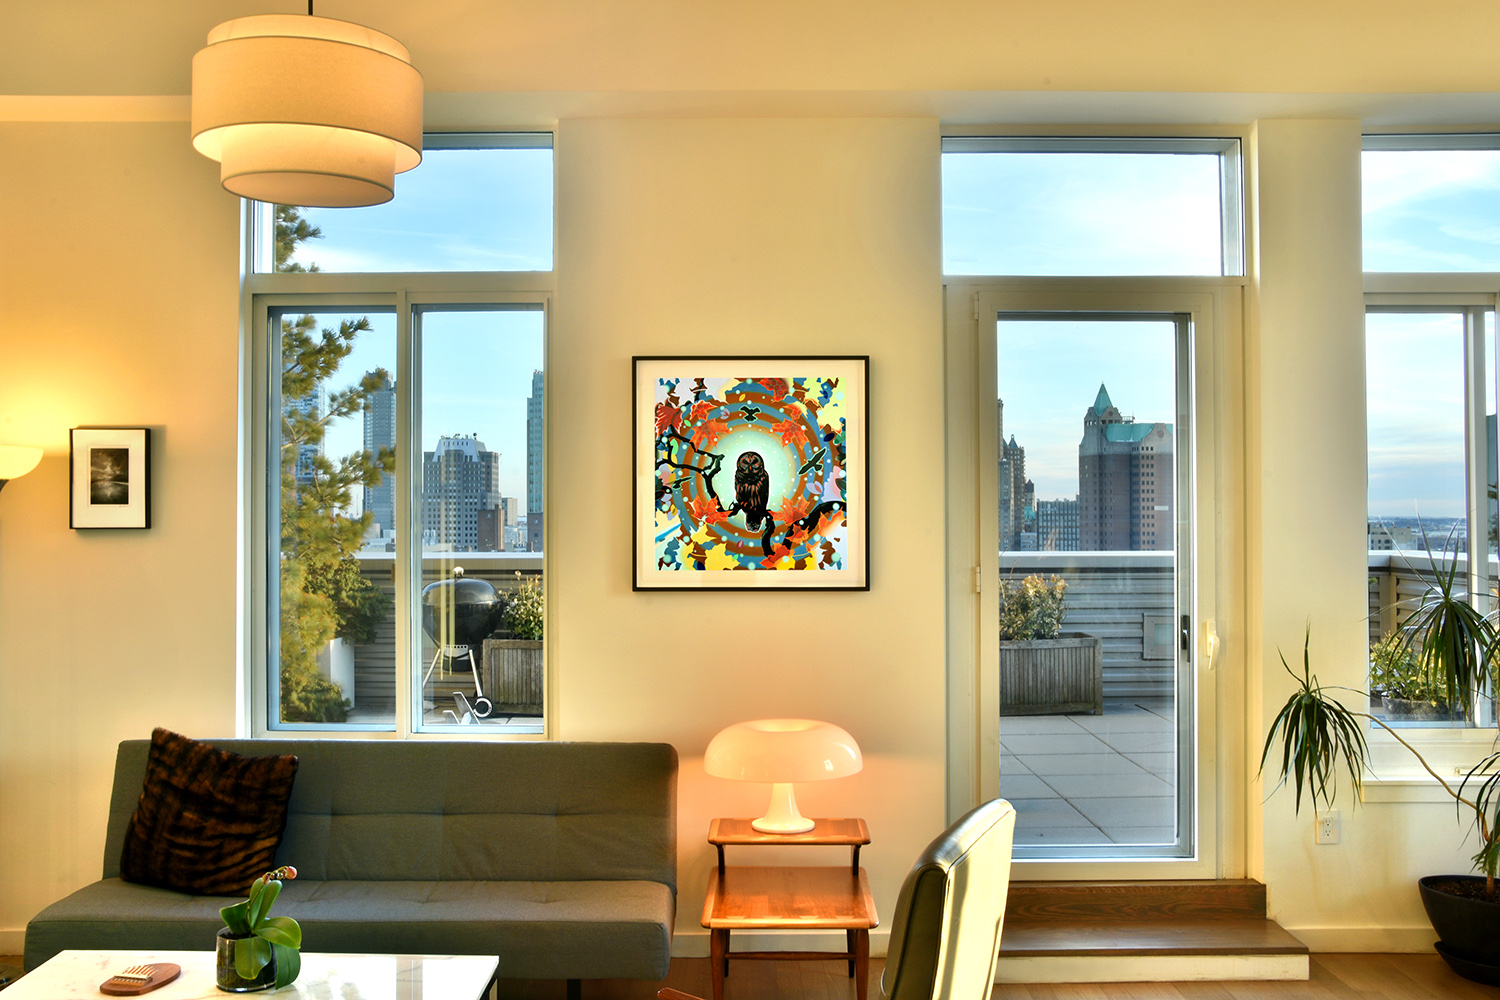 Special hand-embellished print commission In Situ in the Collector's home (Brooklyn, NY)